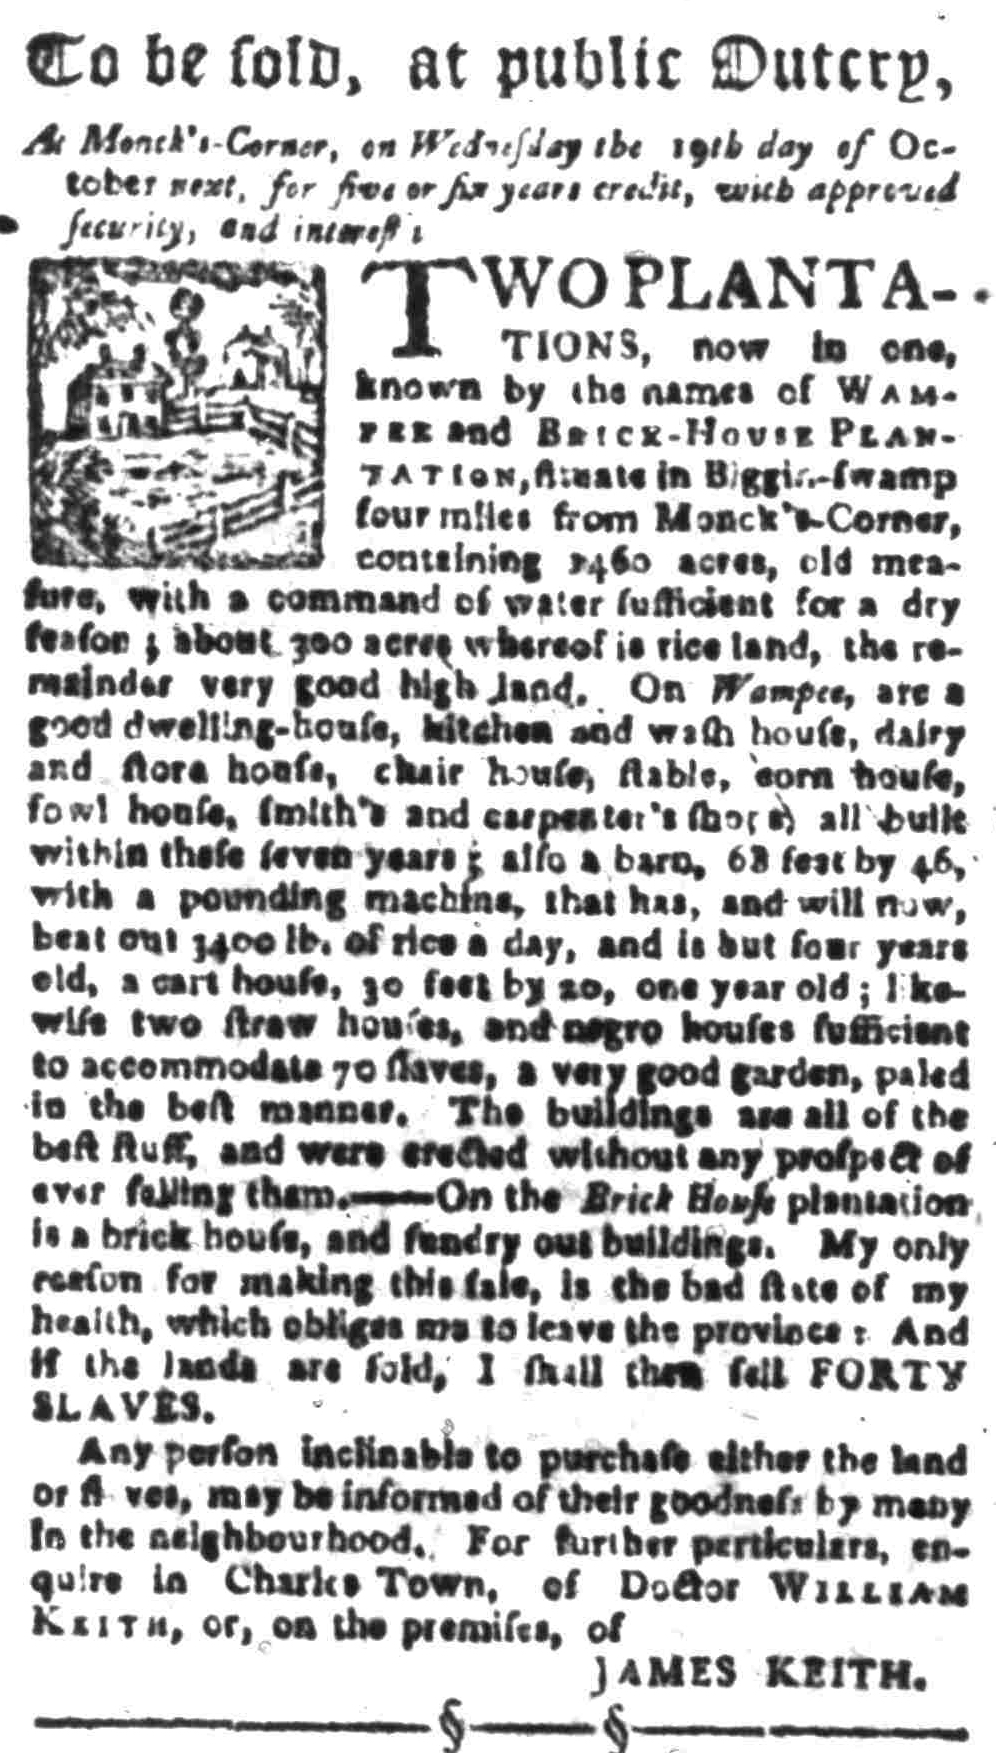 Sep 26 - South-Carolina Gazette Slavery 1